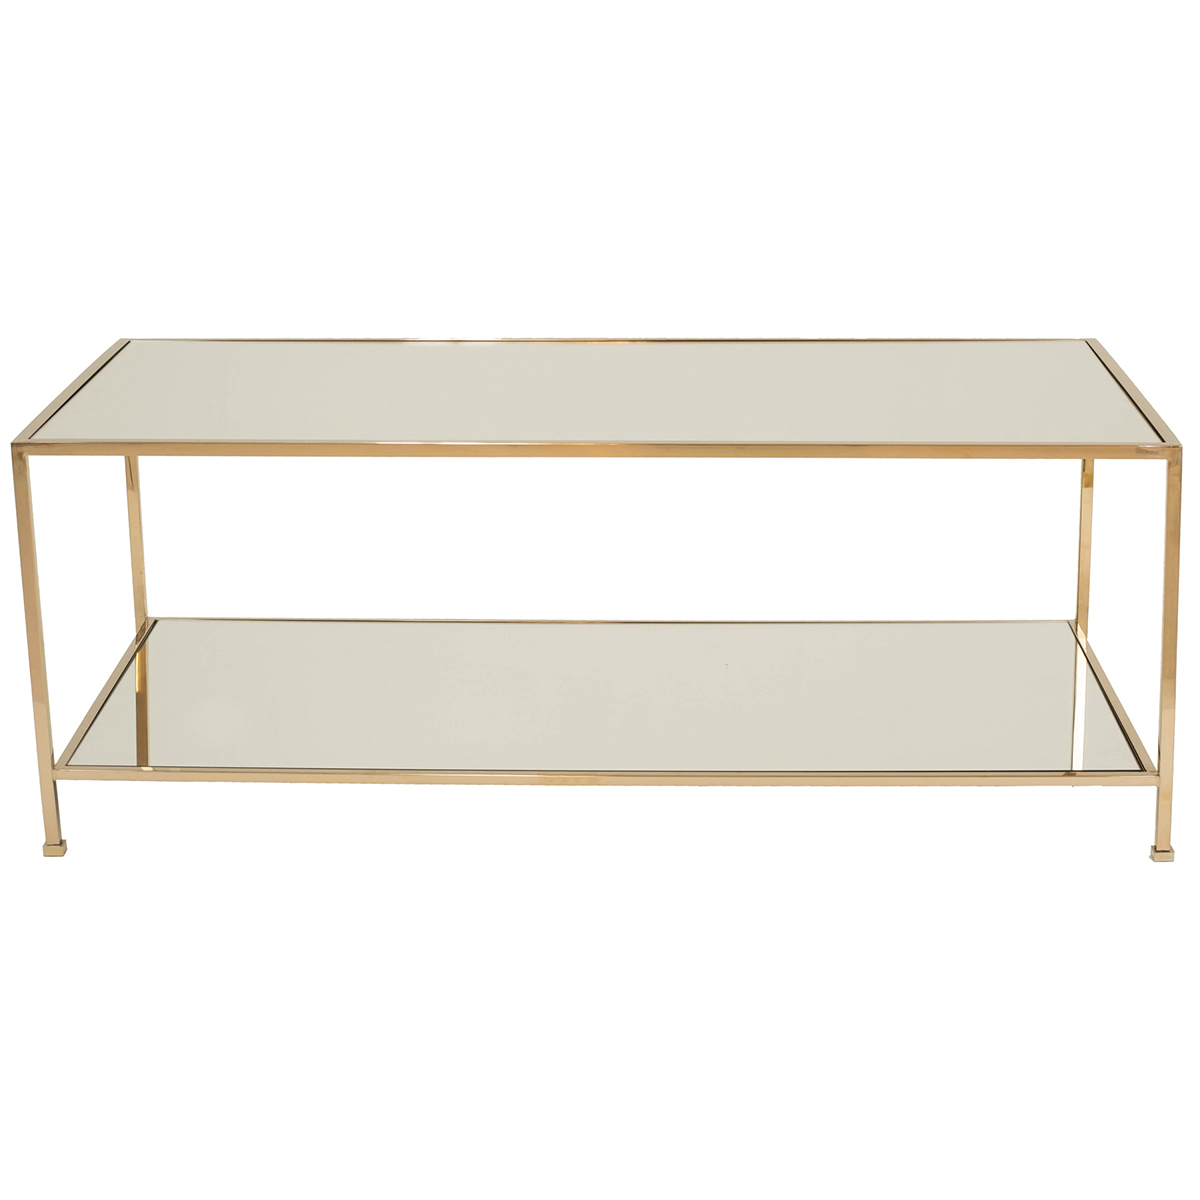 Wing Coffee Table – Polerad Mässing